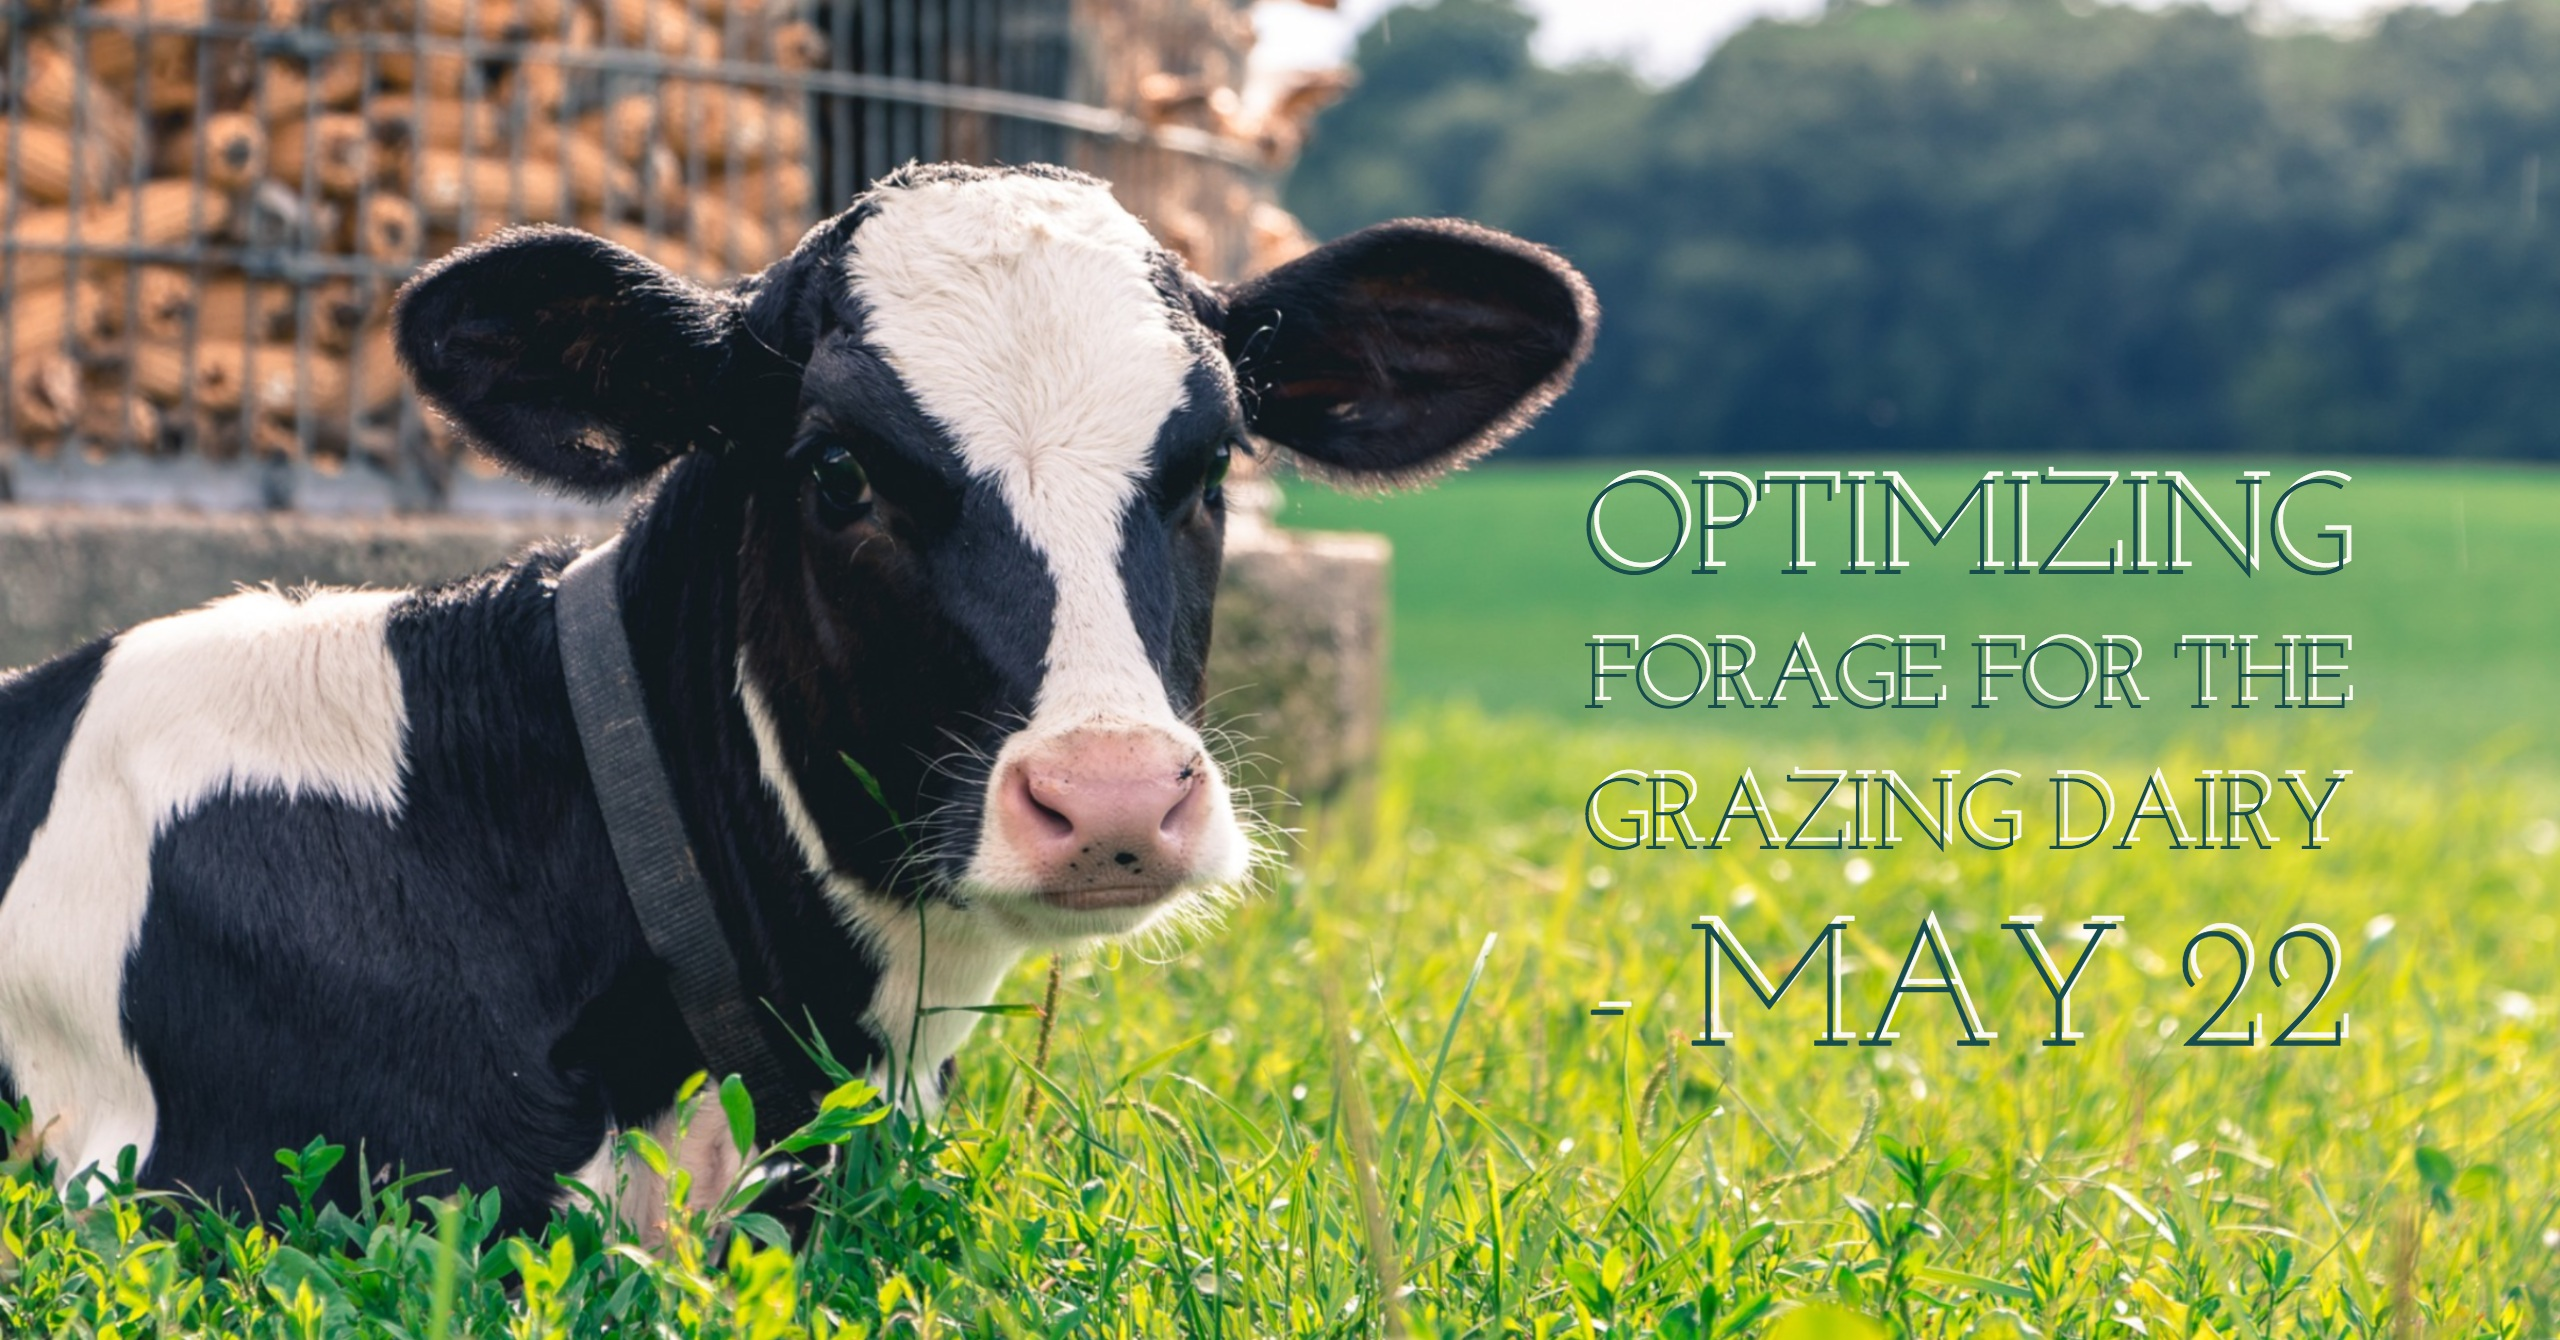 Forage for Grazing Dairy